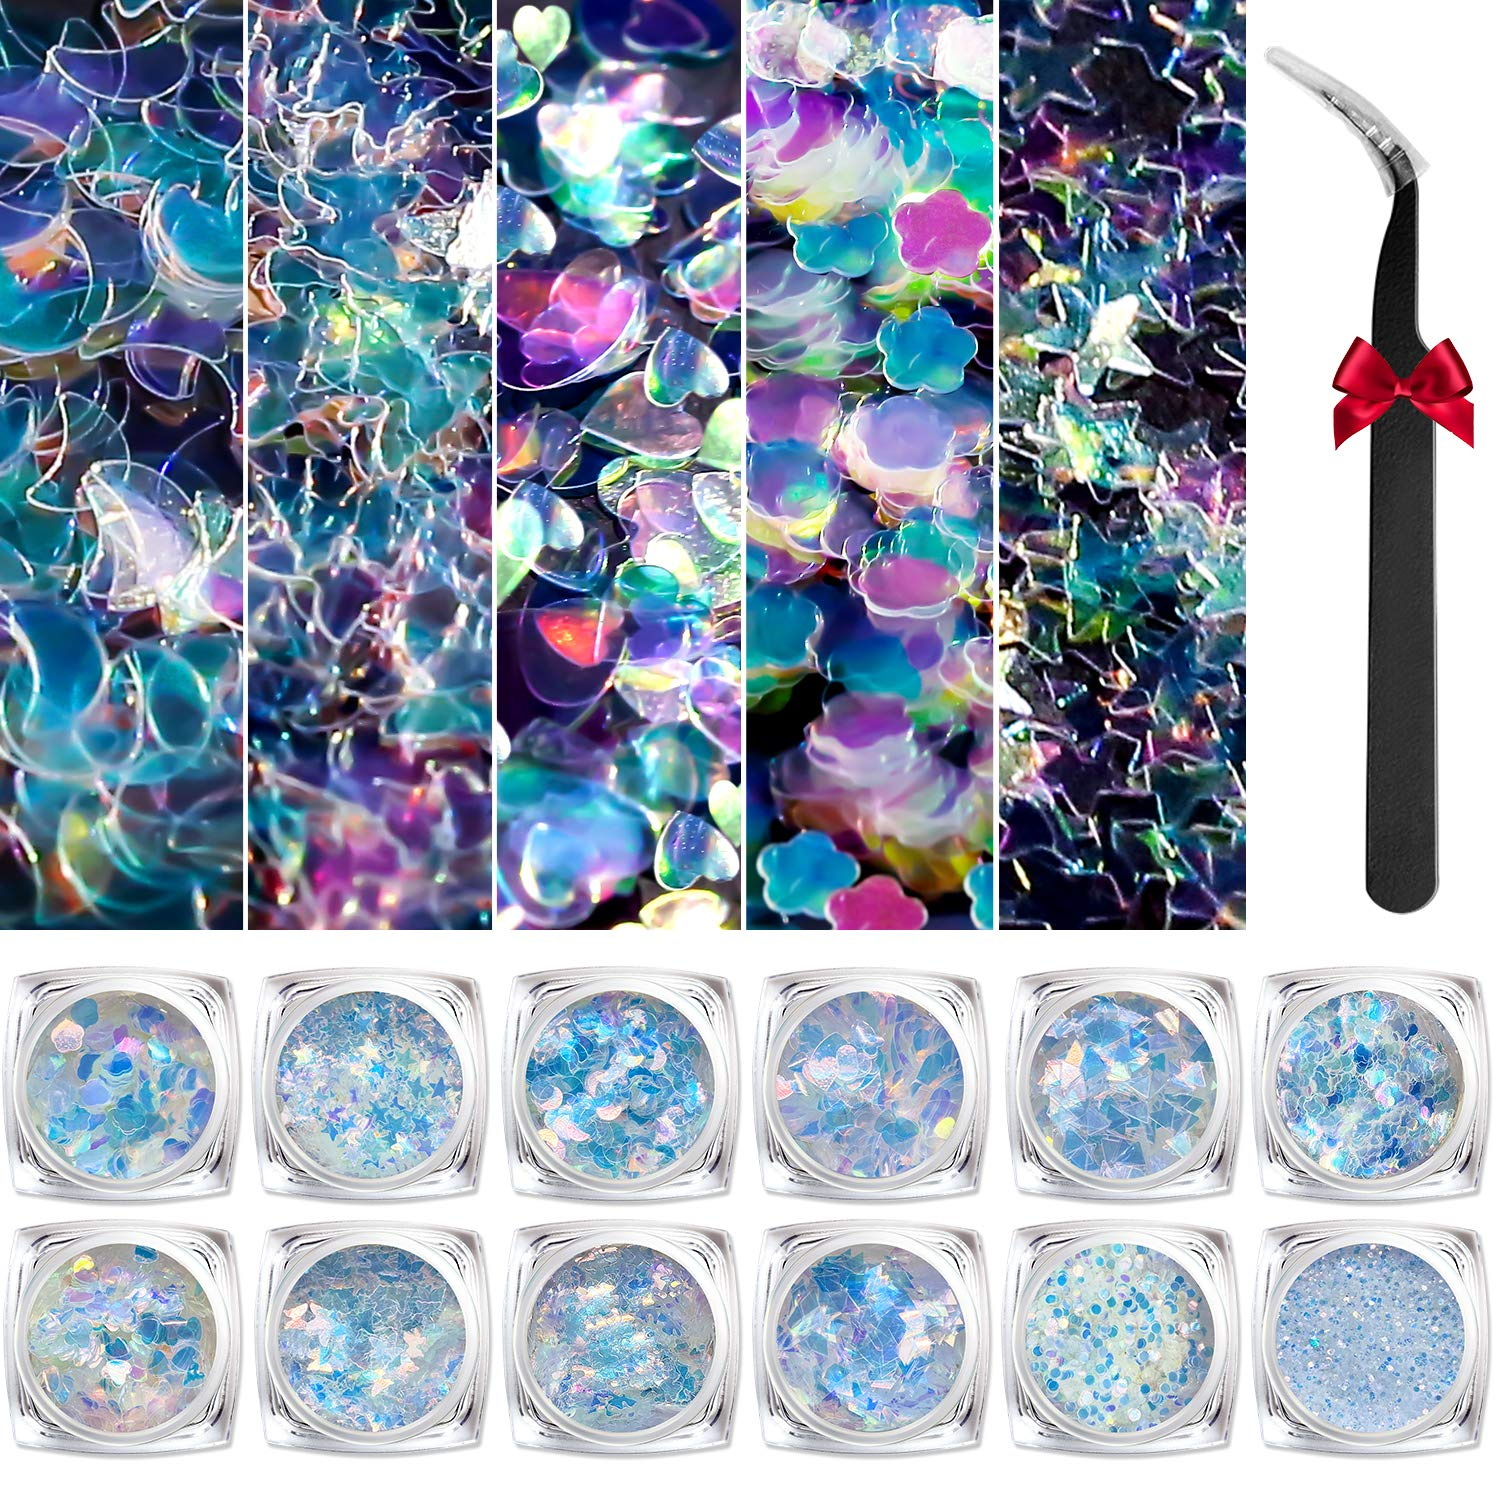 Modelones Holographic Nail Sequins 12 Colors Iridescent Mermaid Nail Glitter 3D Laser Sequins Nail Sparkle for Gel Nail Polish Dip Powder Flake Acrylic Paillettes with Tweezers Nail Art Decoration: Beauty